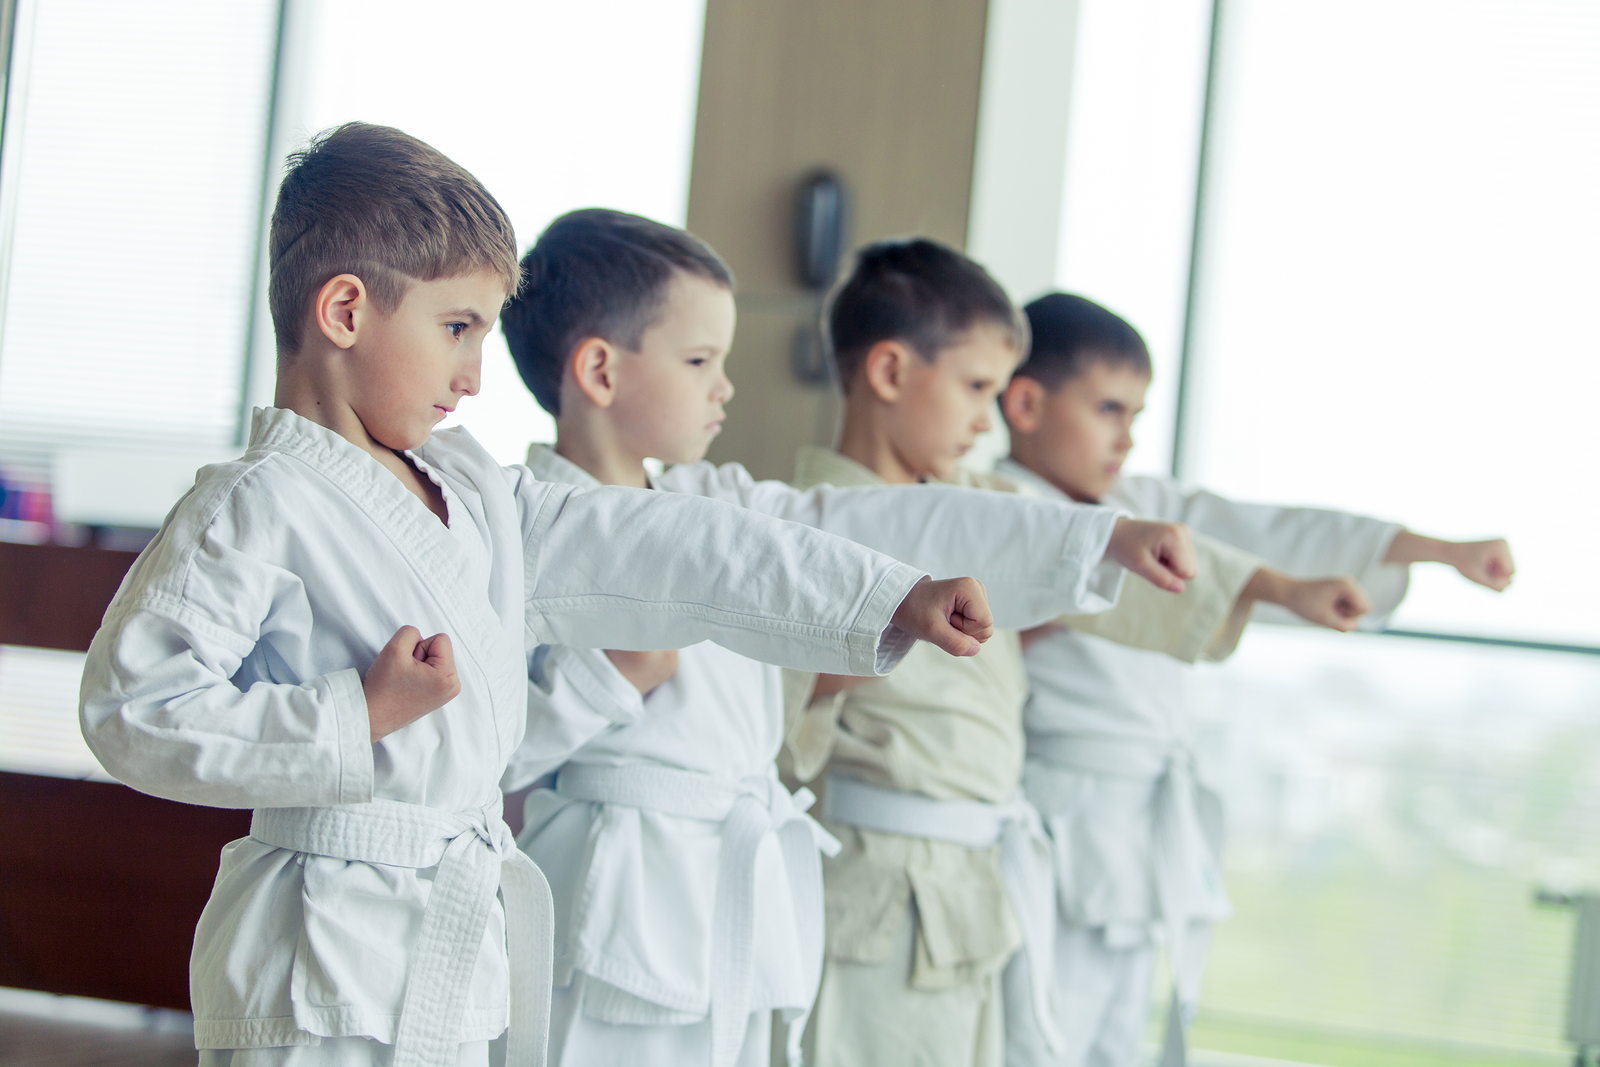 We offer Karate classes for kids and adults in Sterling Heights, Michigan